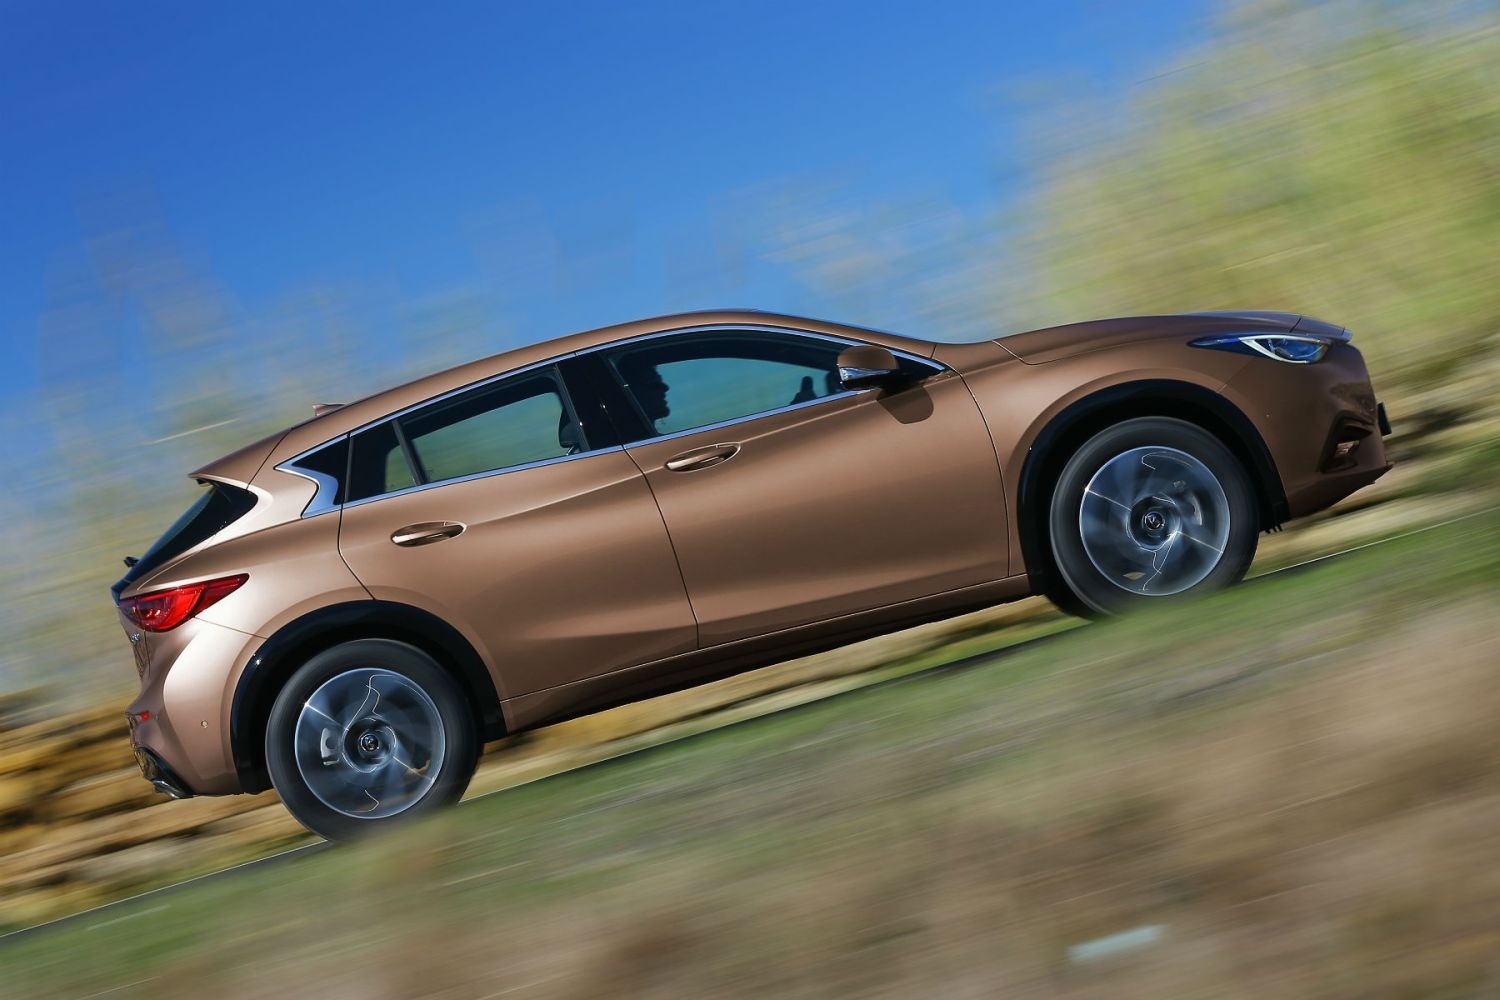 Infiniti Q30 review: On the road